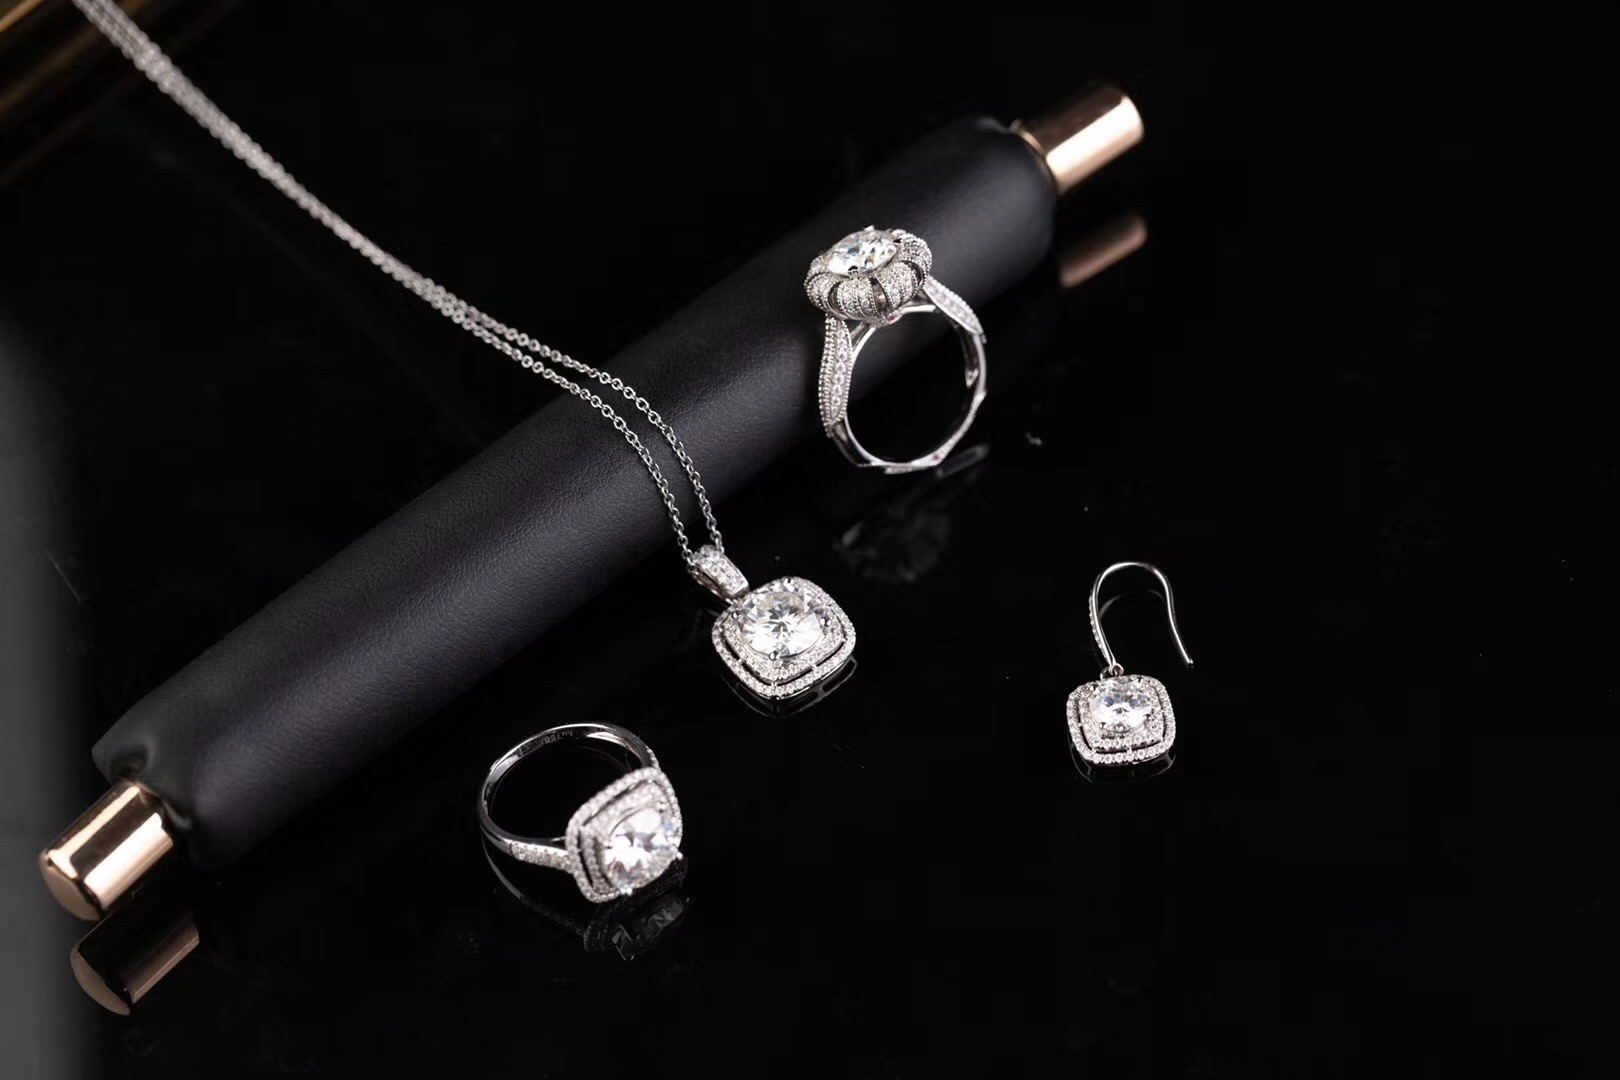 Genuine silver jewelry mosang Diamond Ring Necklace Earrings 925 Sterling Silver ferry 18 K gold living bag with postal Belt Certificate